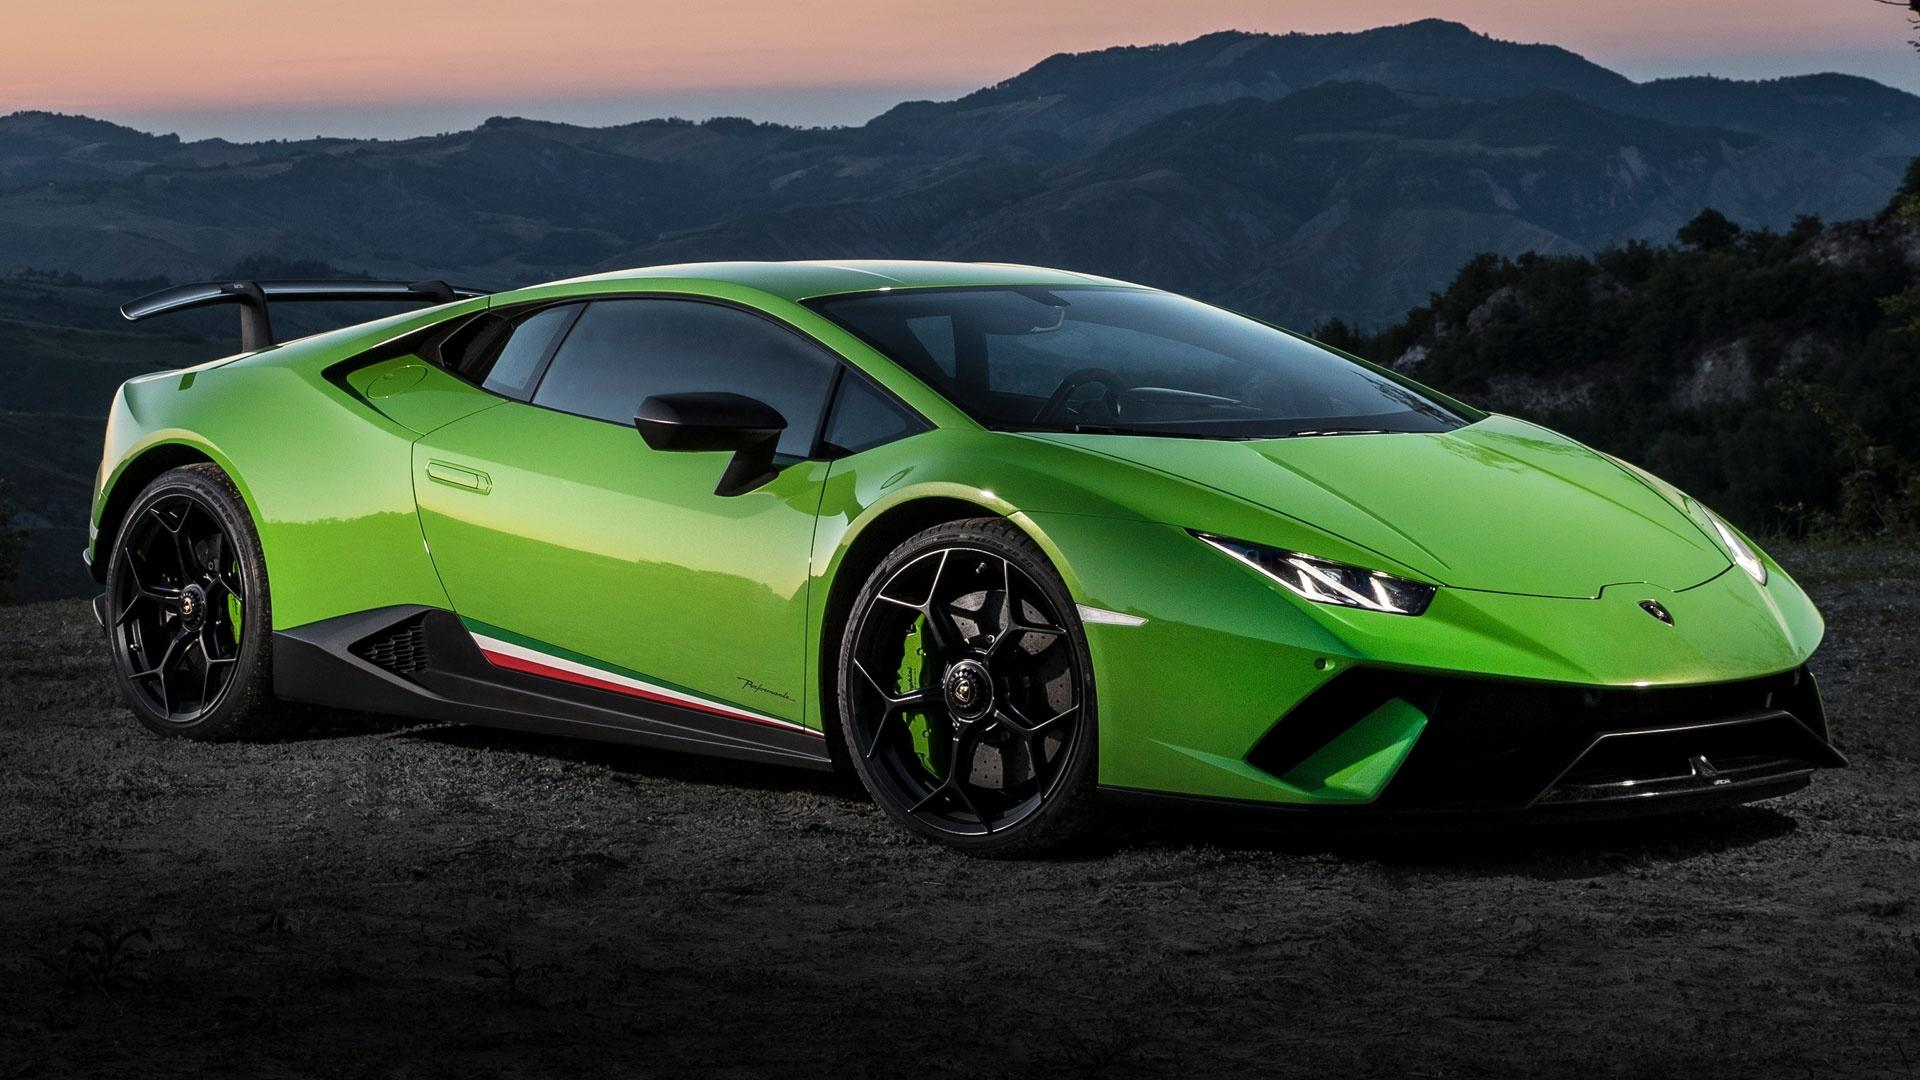 S37 E29 2018 Lamborghini Huracan Performante 2018 Buick Regal